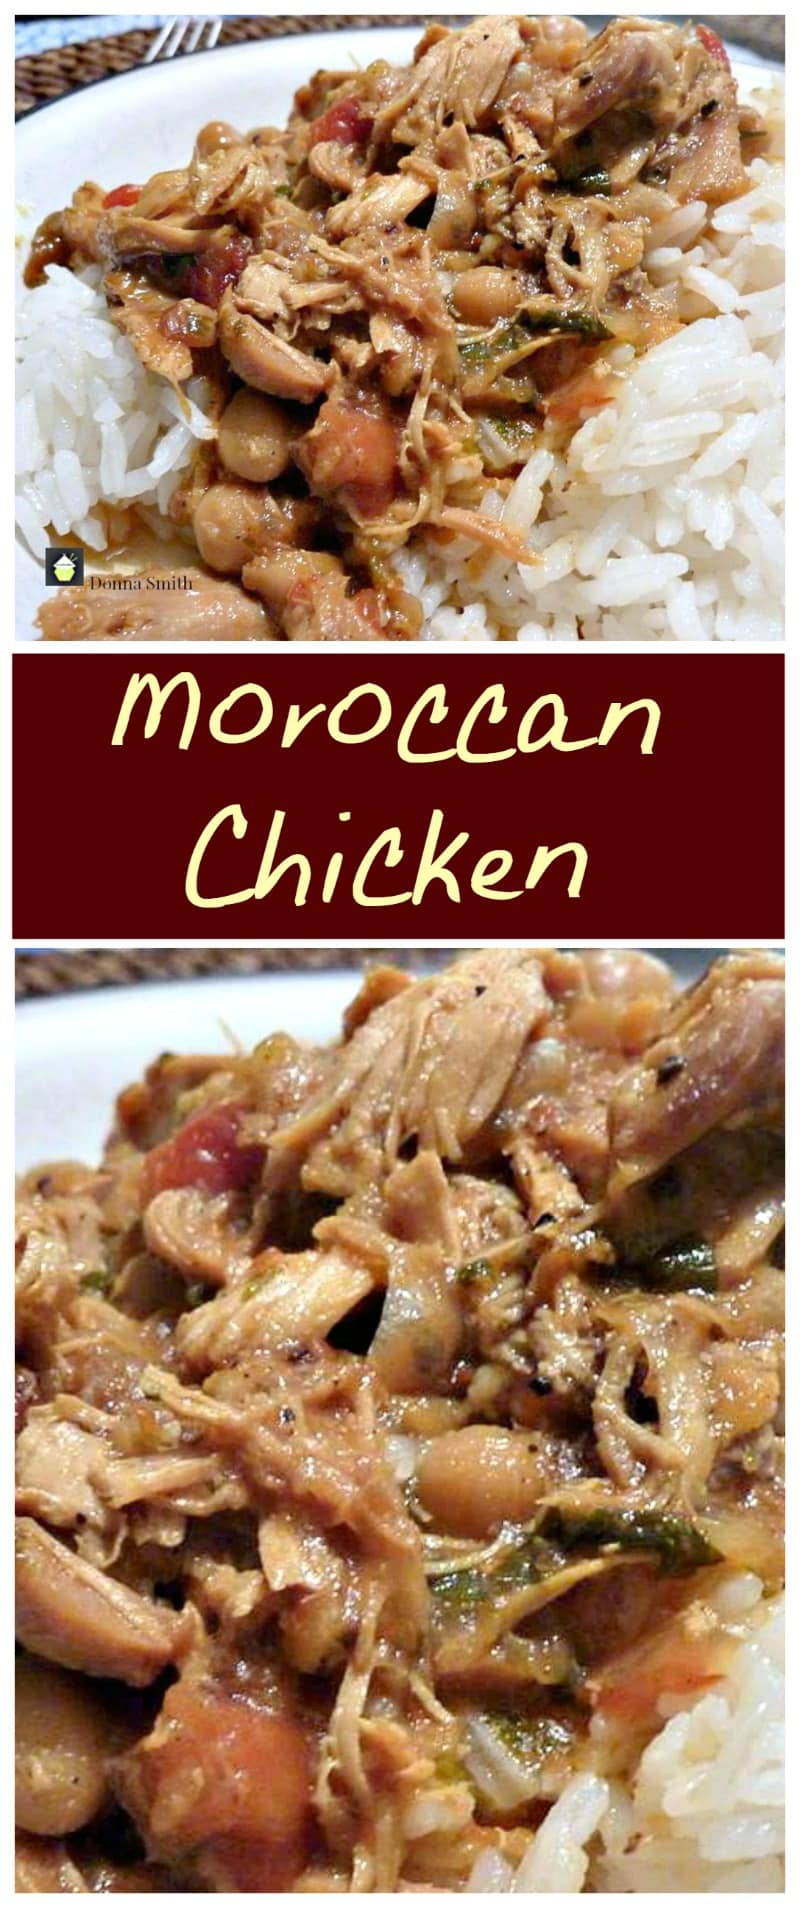 Moroccan Chicken. The flavors in this are amazing and just close your eyes and imagine the aromas coming from this when it's cooking!